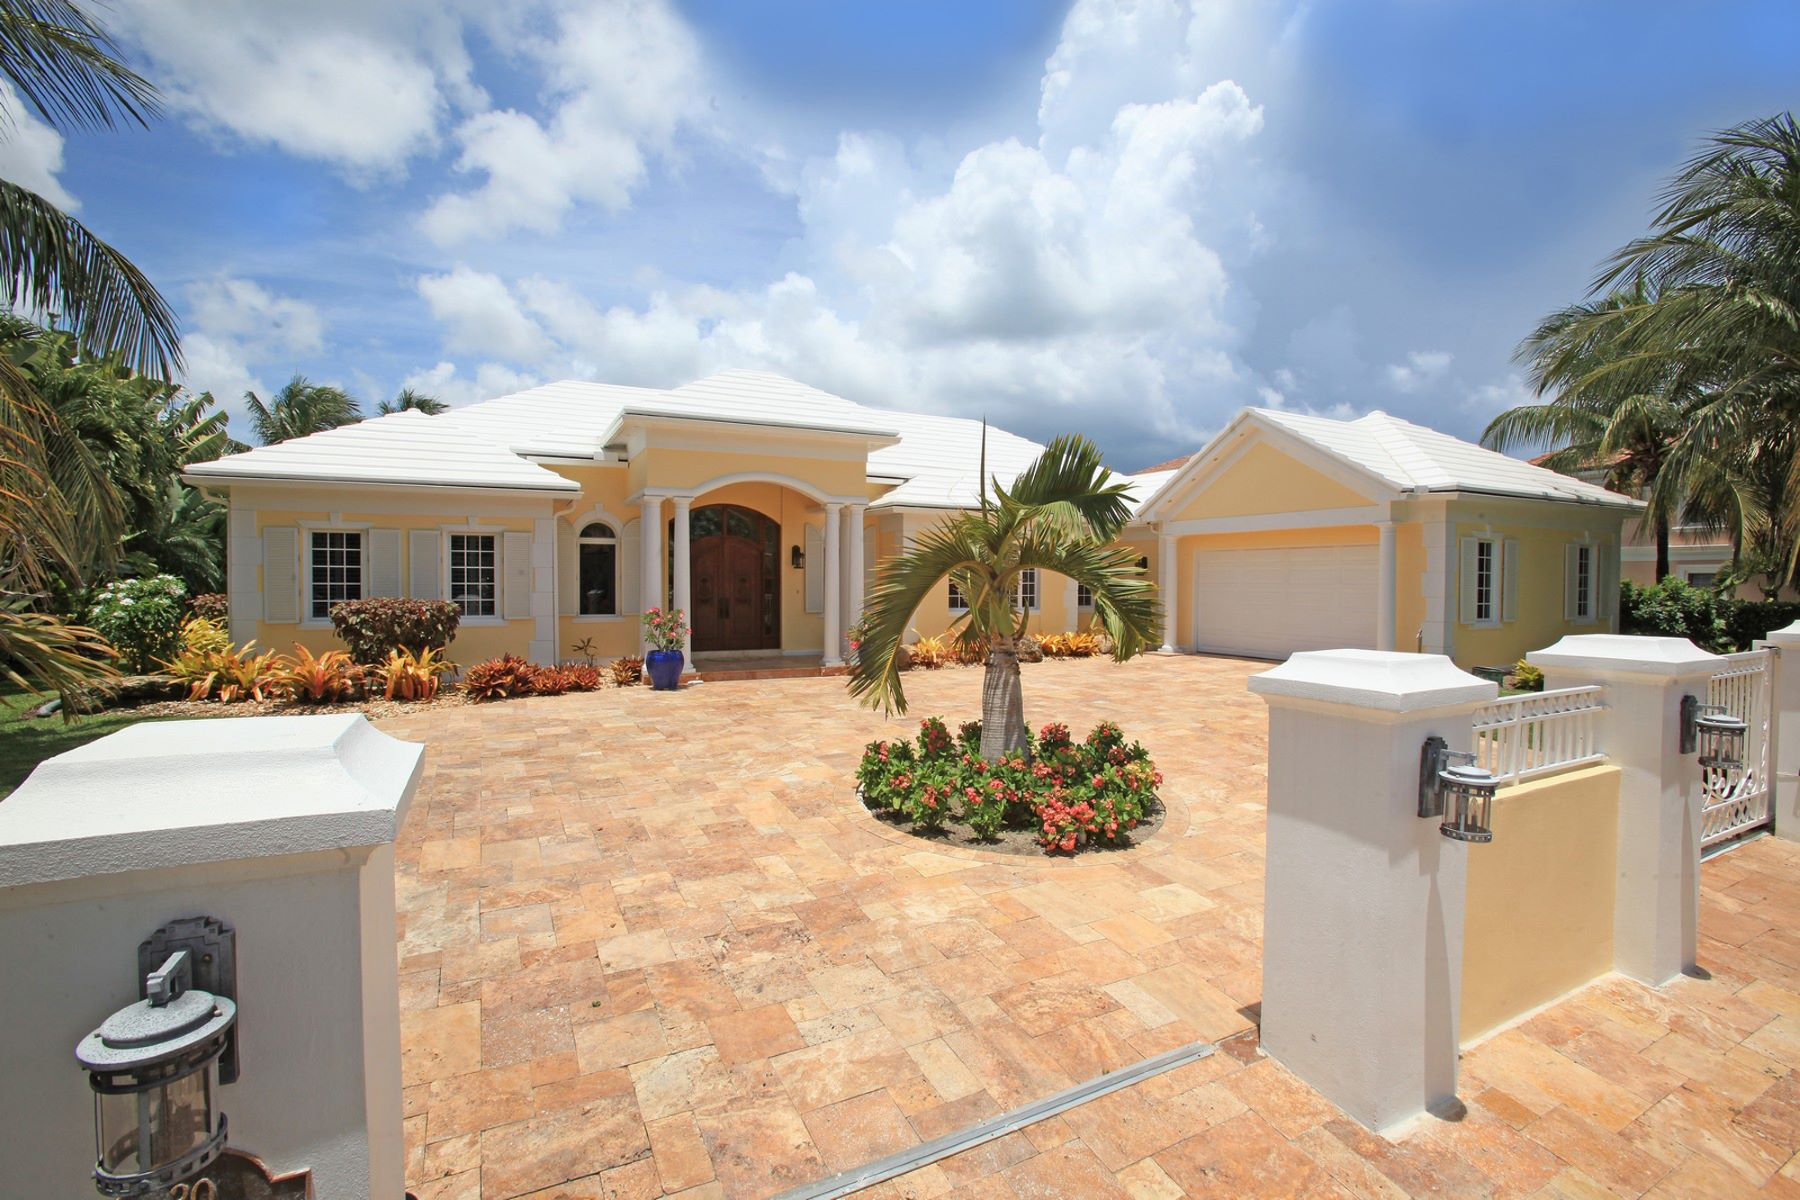 Additional photo for property listing at Ocean Club Estates #30 Ocean Club Estates, Paradise Island, Nassau And Paradise Island Bahamas